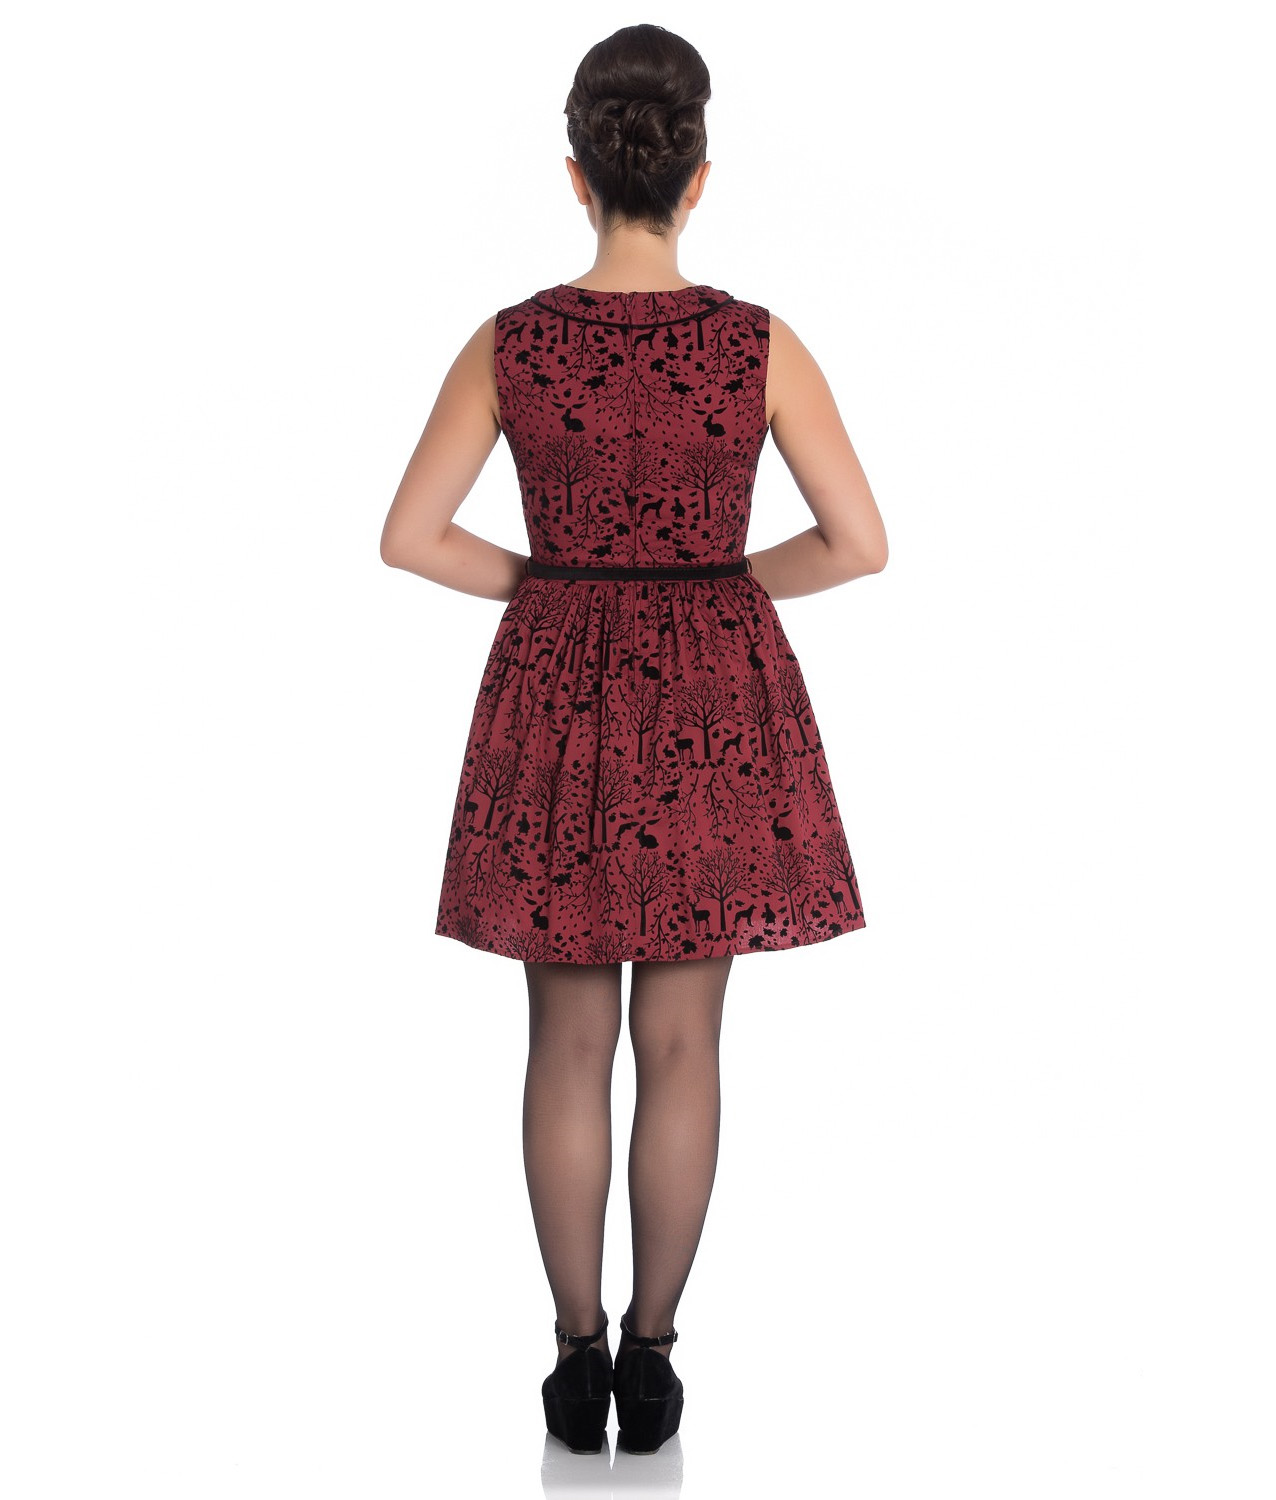 Hell-Bunny-50s-Mini-Skater-Dress-Woodland-Trees-SHERWOOD-Black-Red-All-Sizes thumbnail 5